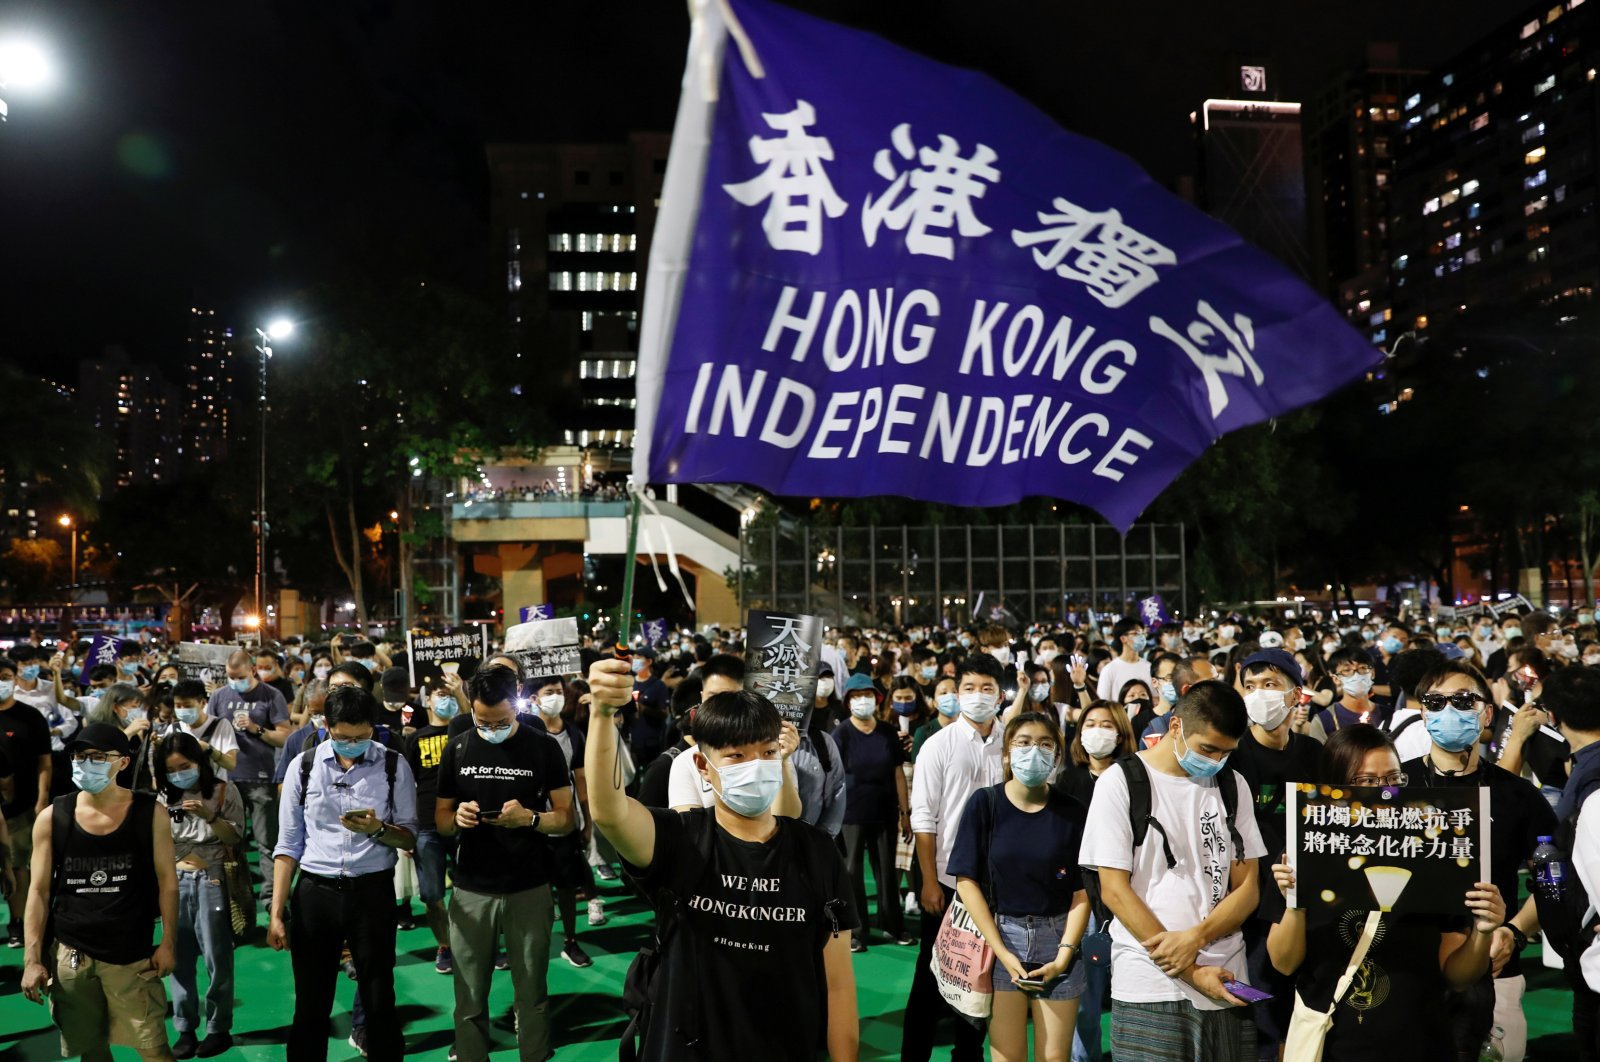 A person wearing protective face mask waves a Hong Kong independence flag as protesters take part in a candlelight vigil to mark the 31st anniversary of the crackdown of pro-democracy protests at Beijing's Tiananmen Square in 1989, after police reject a mass annual vigil on public health grounds, at Victoria Park, in Hong Kong, China June 4, 2020. (Reuters Photo)